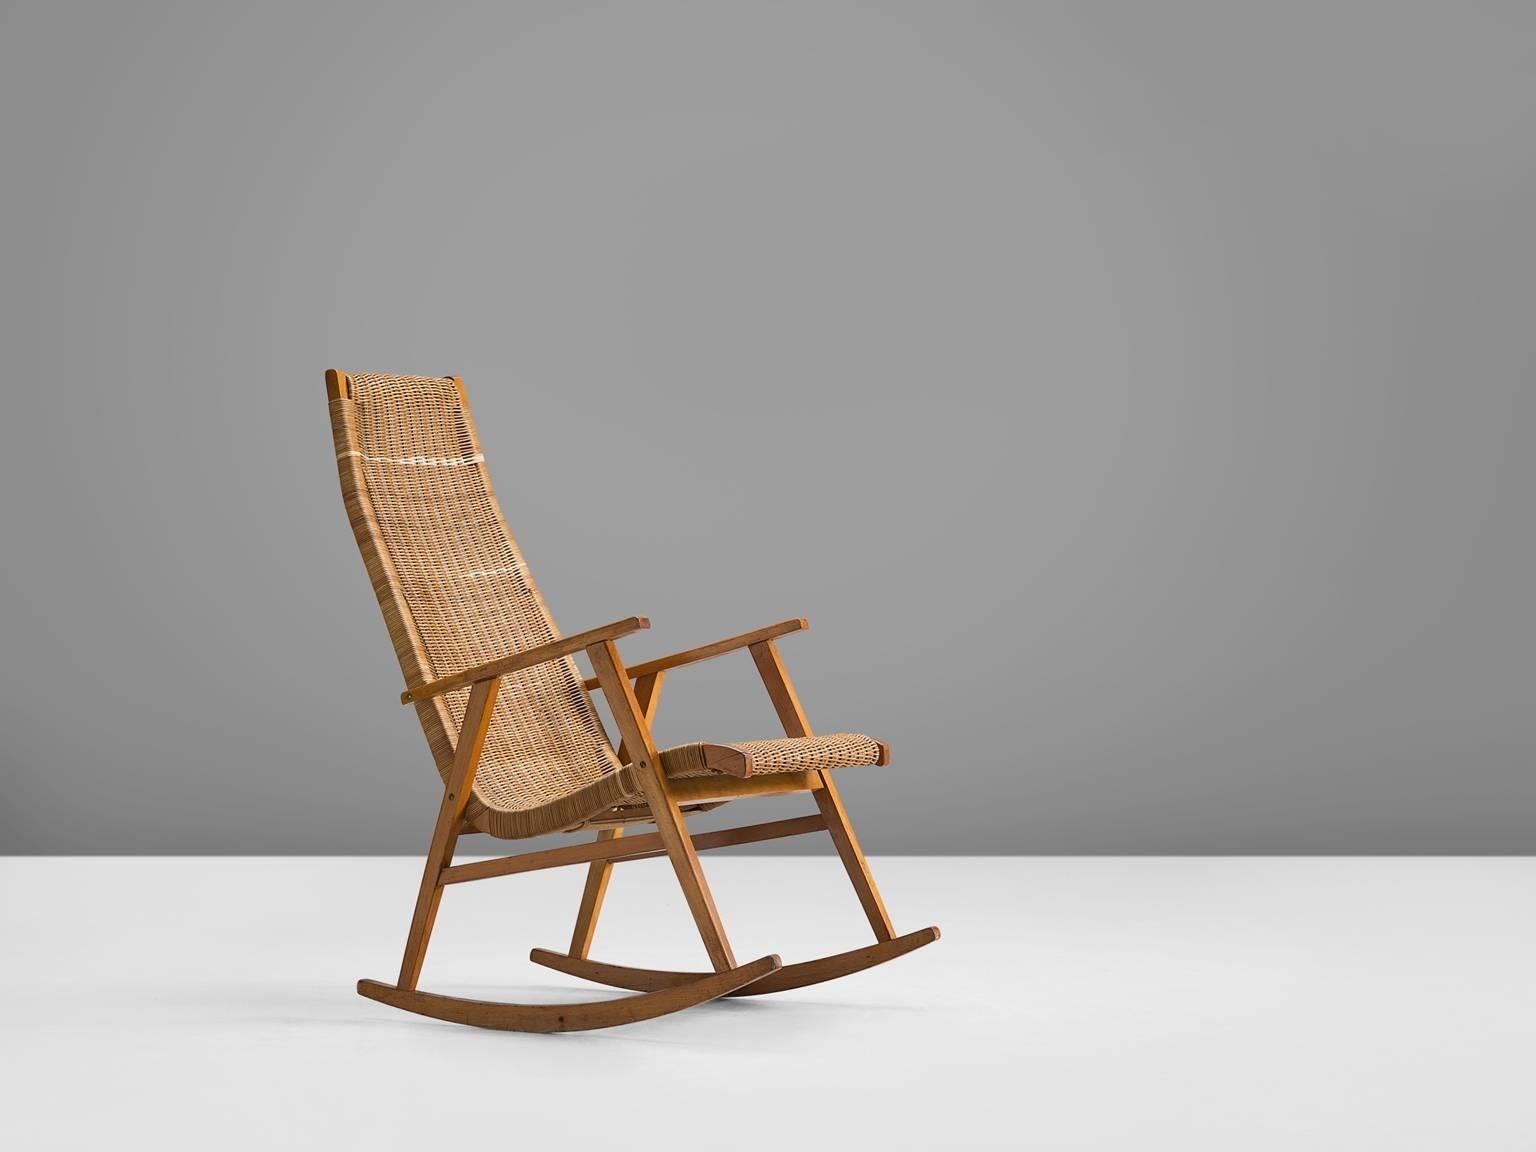 Lounge Chair, In Cane And Wood, The Netherlands, 1950s. This Classic Rocking